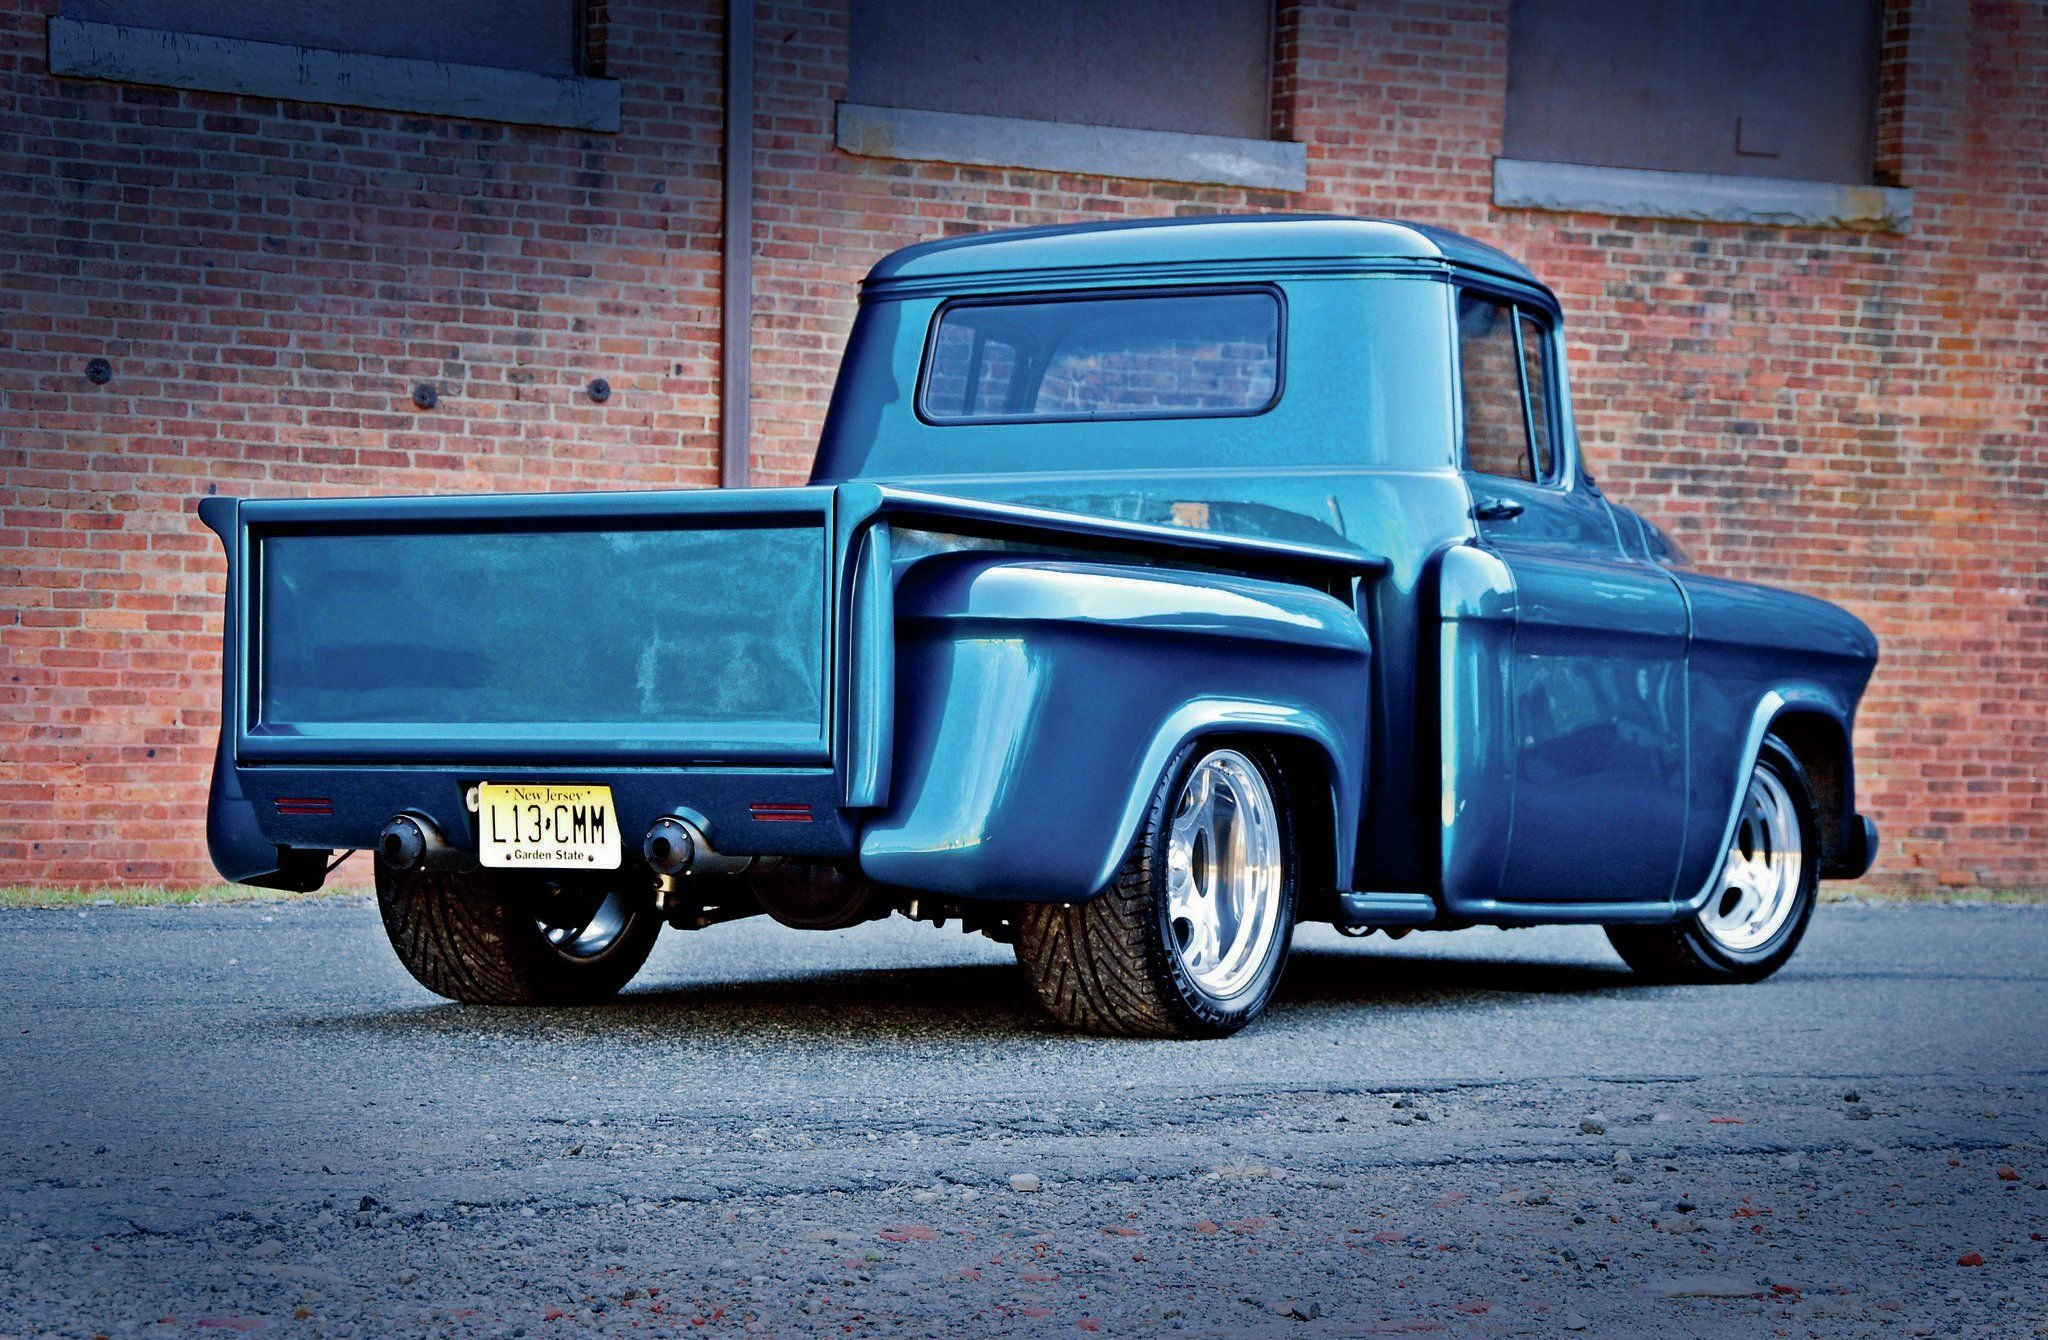 1955 GMC Pickup-02 wallpaper